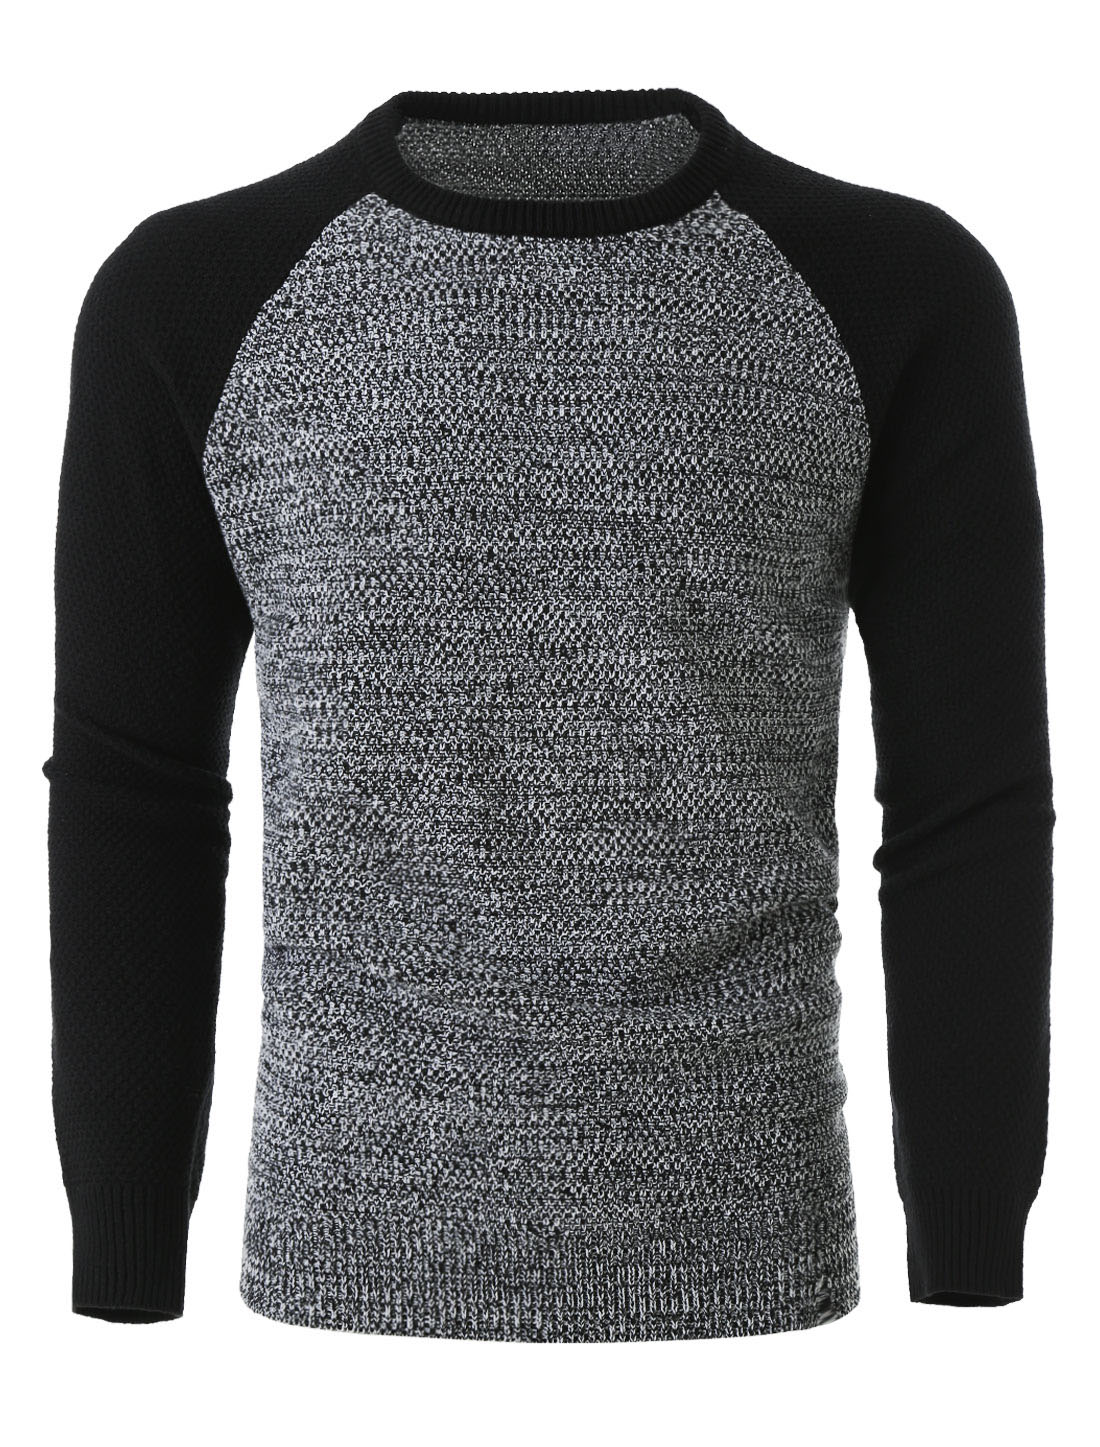 Men Lightweight Colorblock Long Sleeves Crew Neck Pullover Knit Sweater Grey M